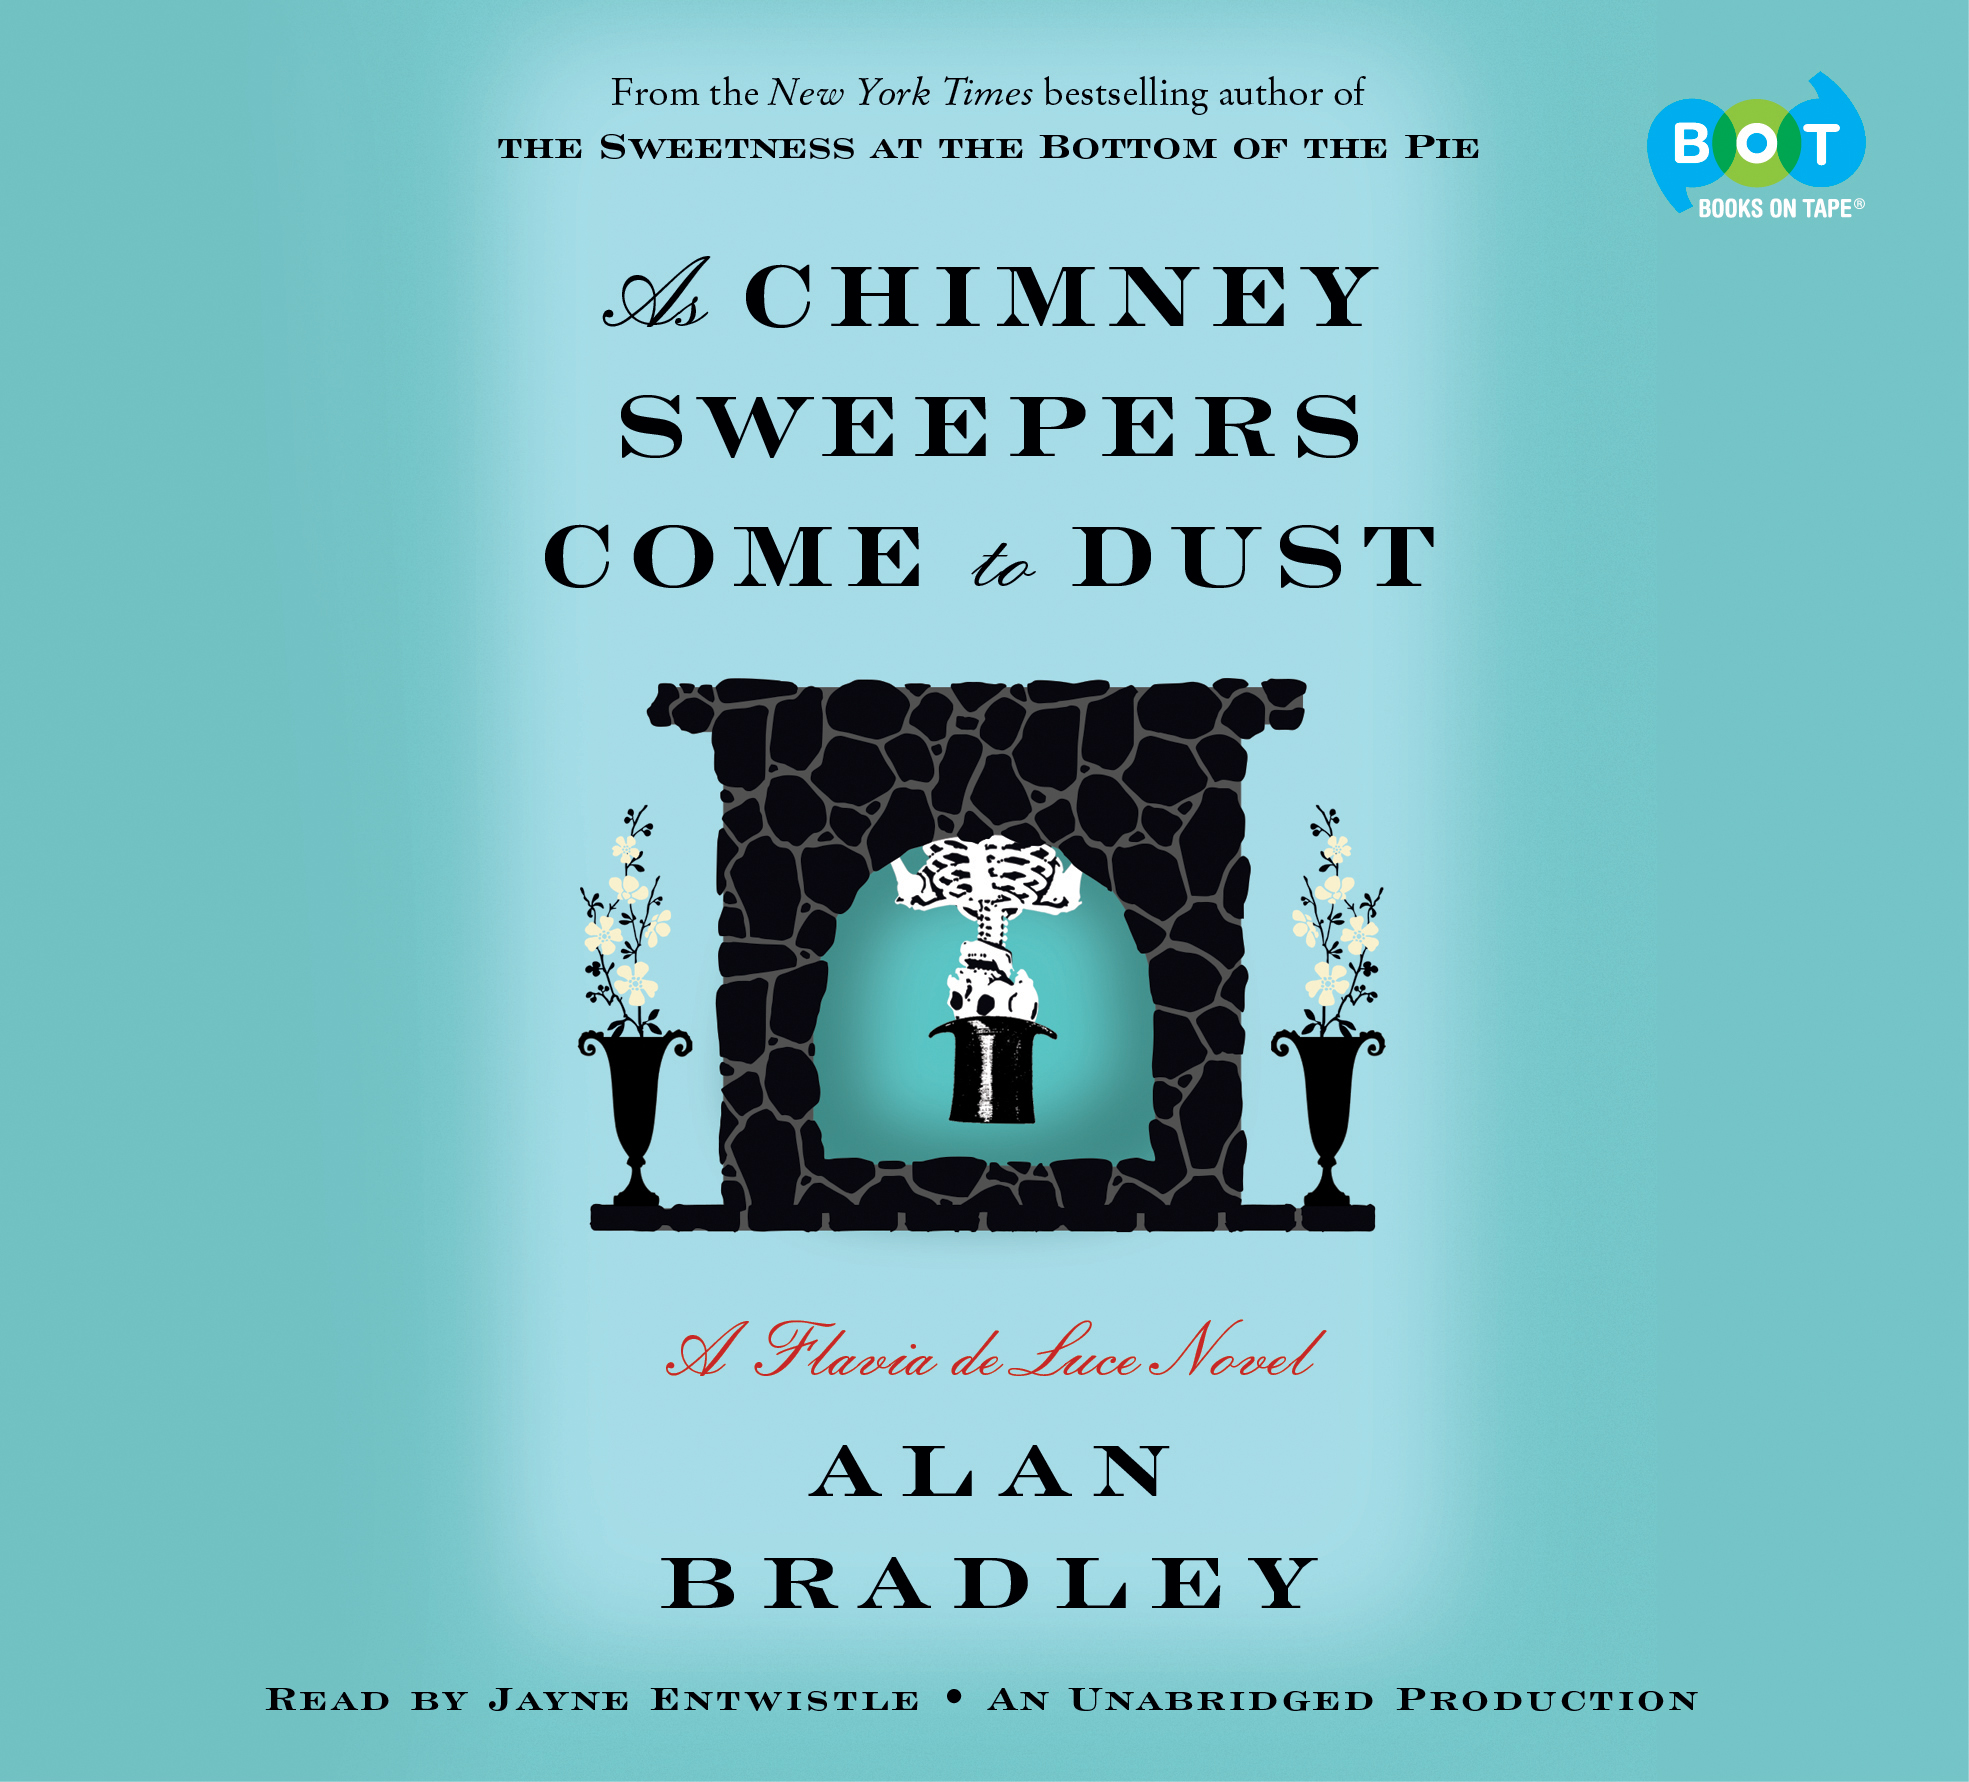 The praise of chimney sweepers essayist